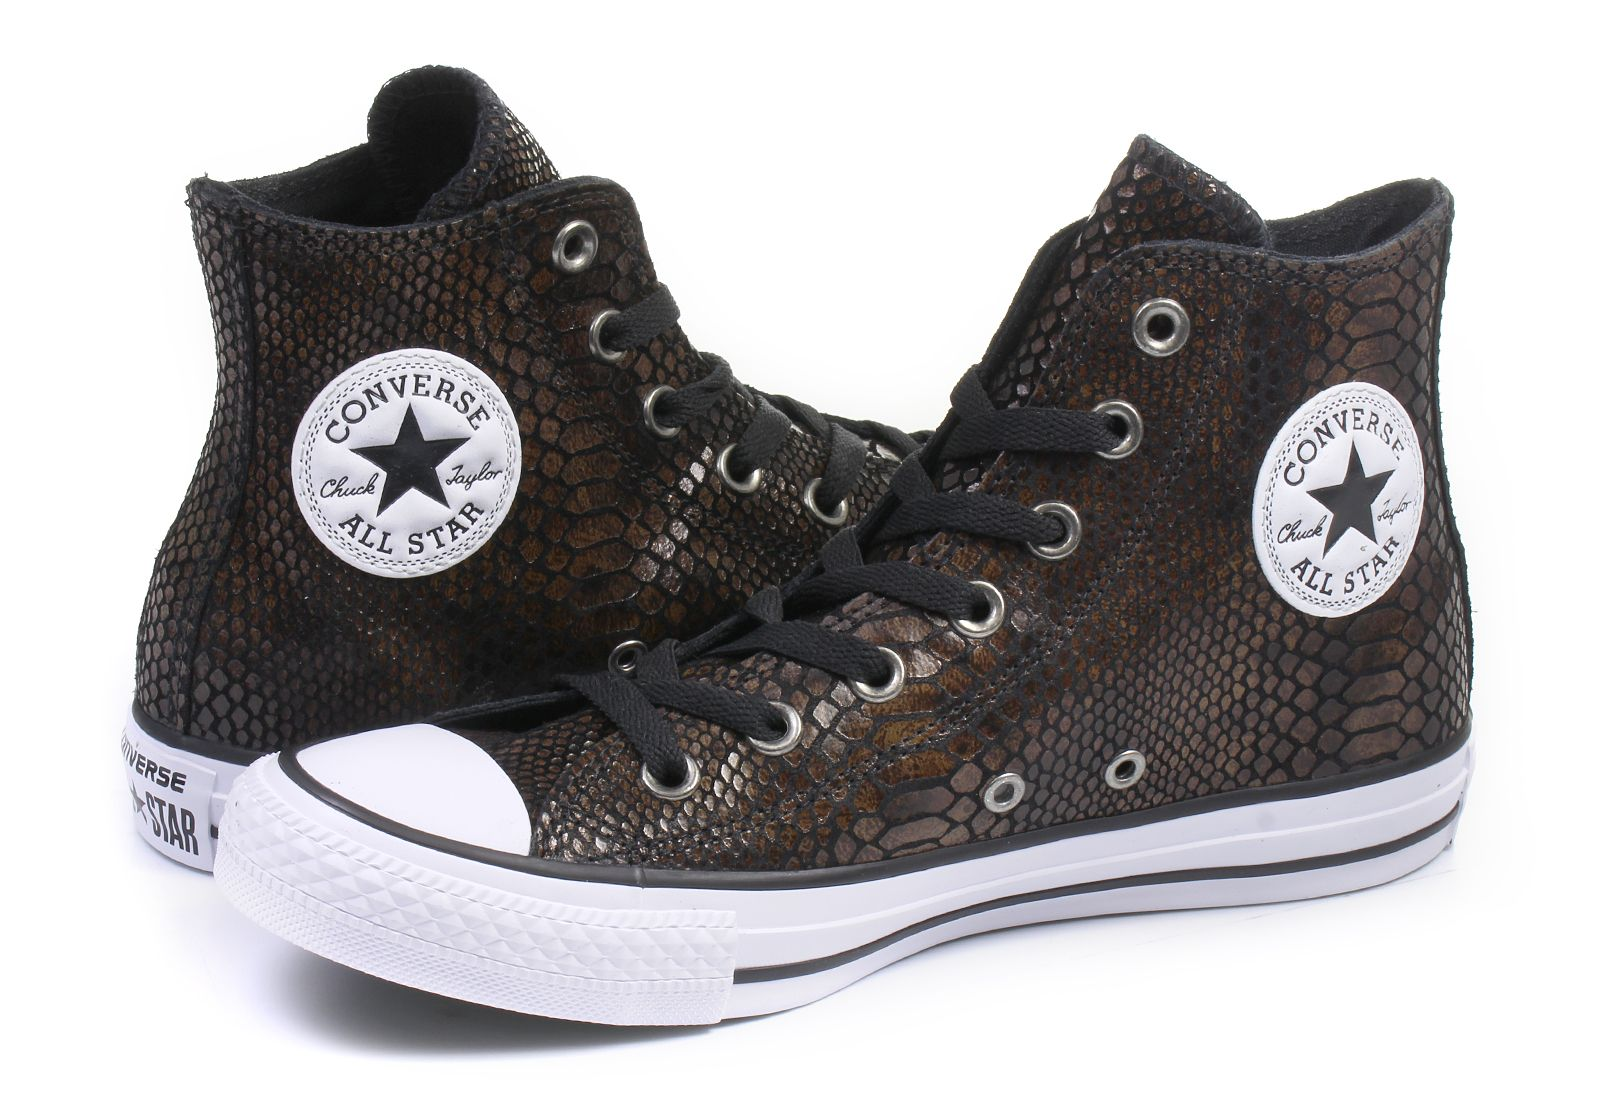 52913822517e Converse Sneakers - Chuck Taylor All Star Animal Print Leather ...